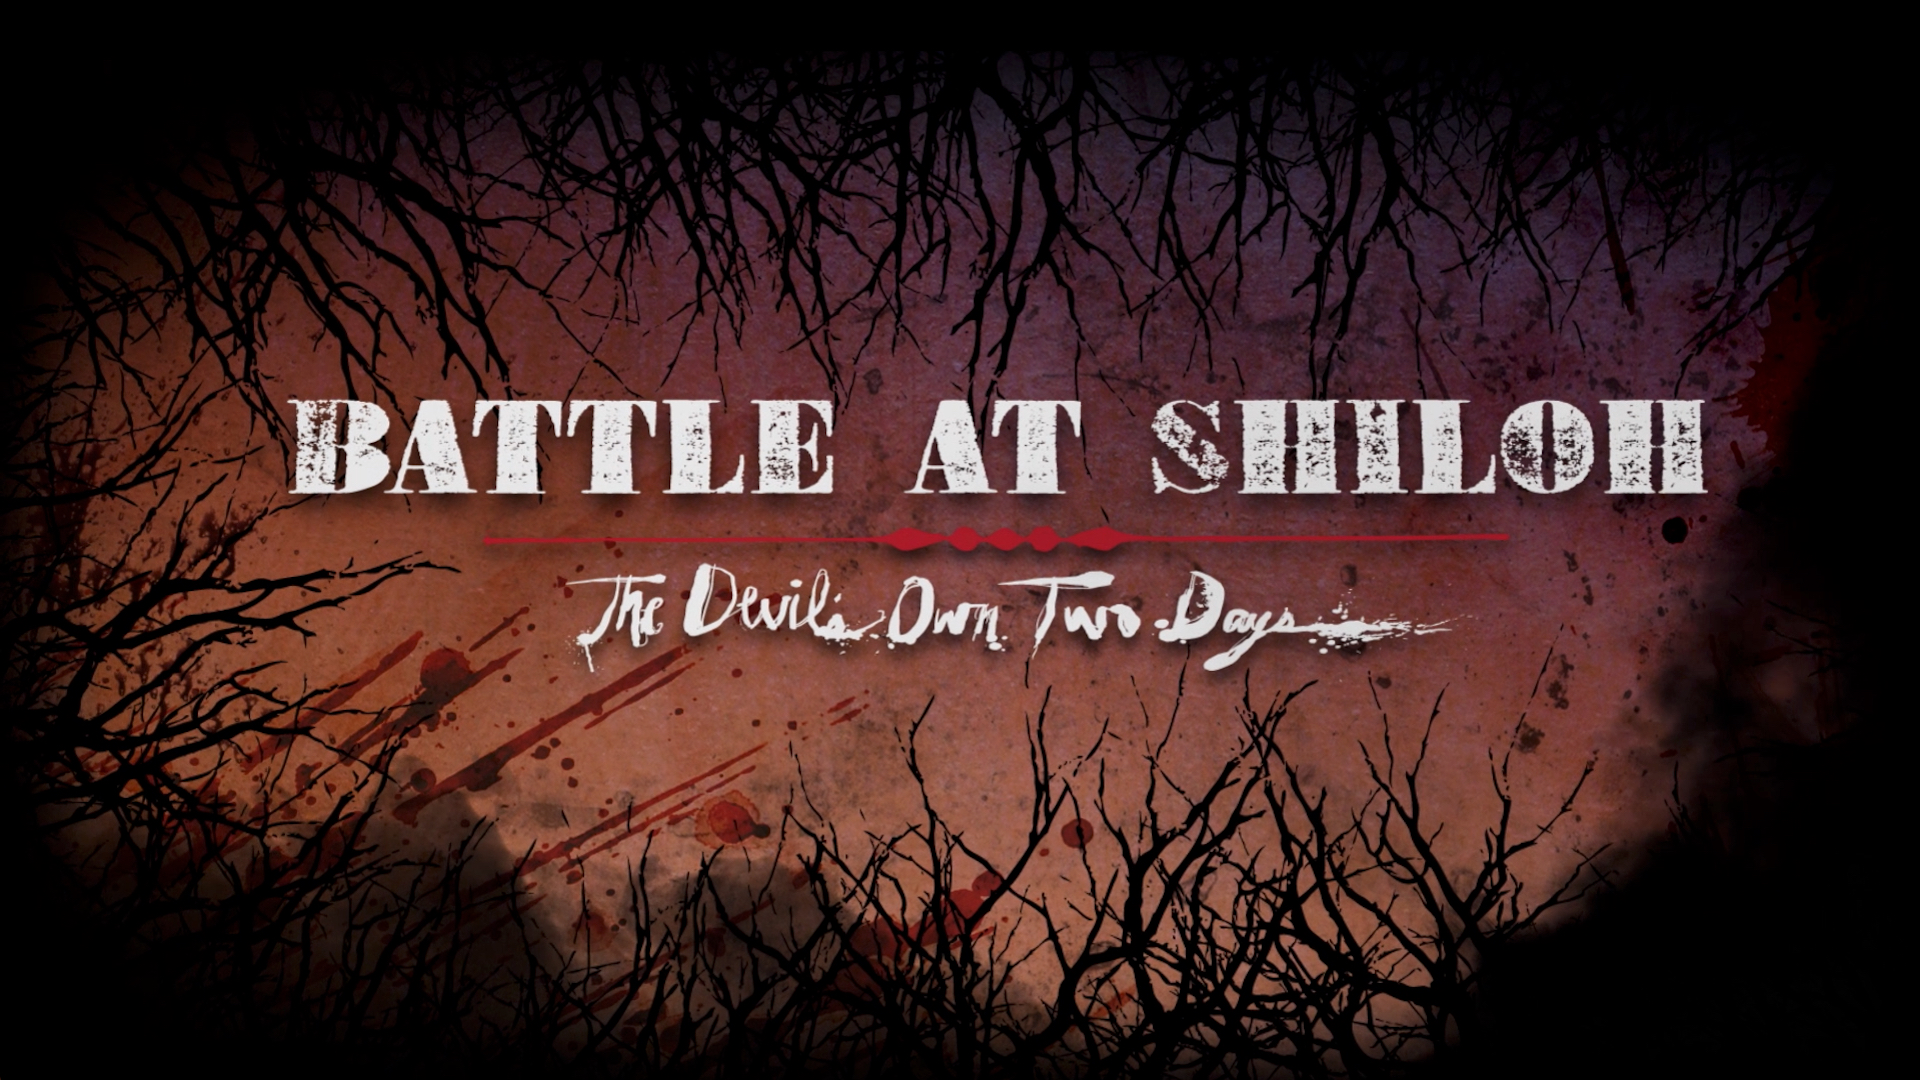 Battle at Shiloh - The Devil's Own Two Days